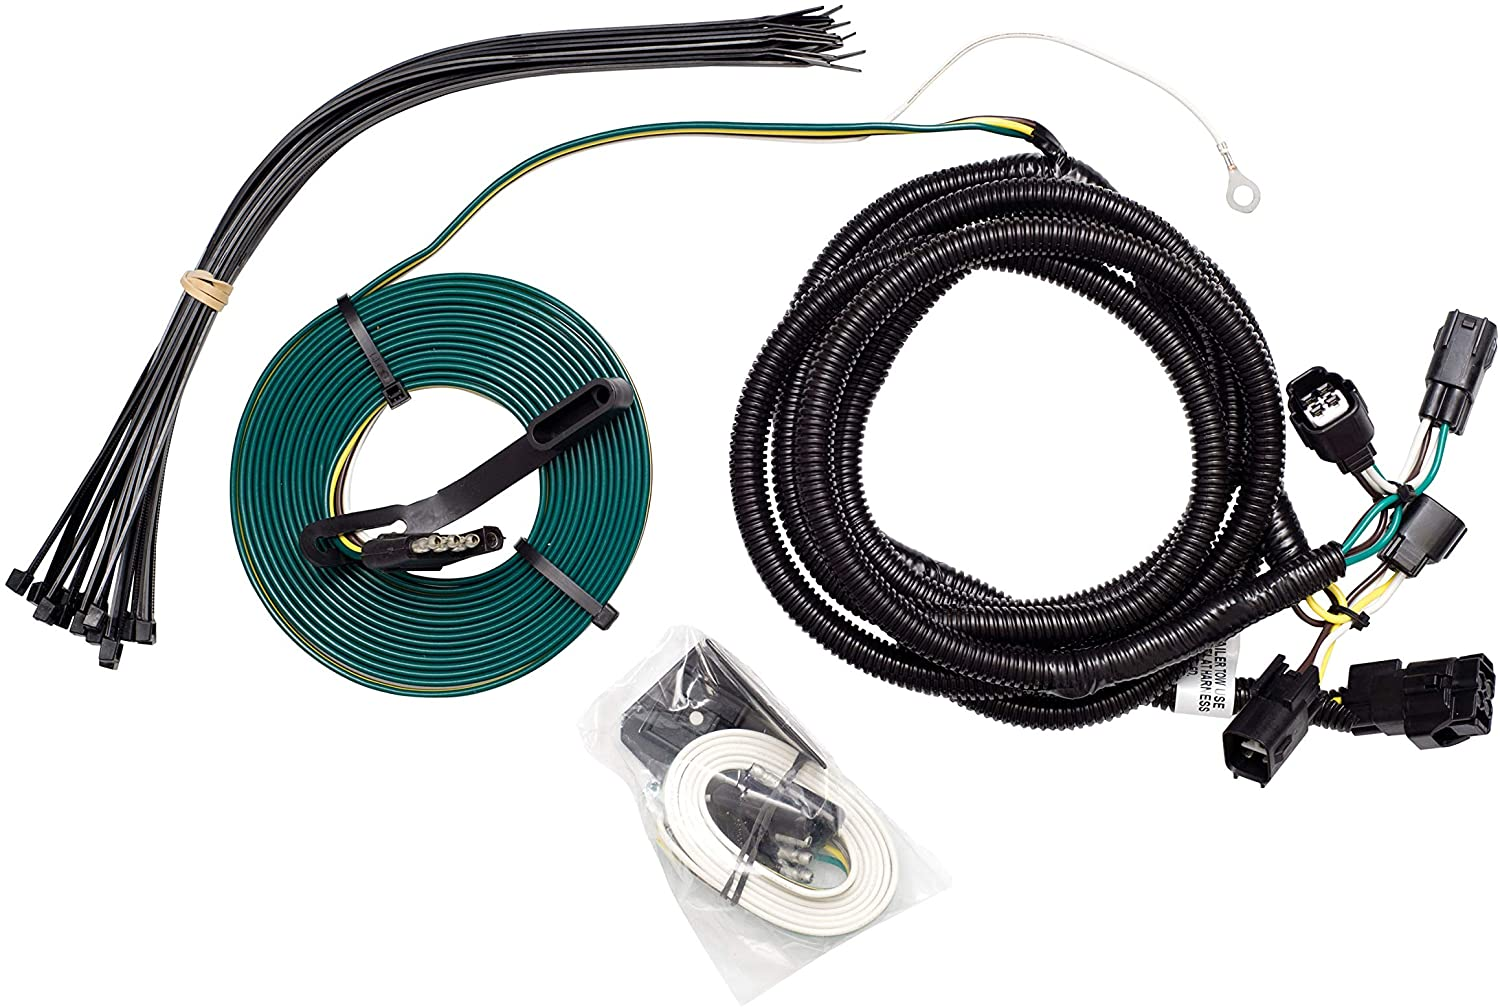 Demco 9523131 Towed Connector Vehicle Wiring Kit for Jeep Wrangler '98-'06